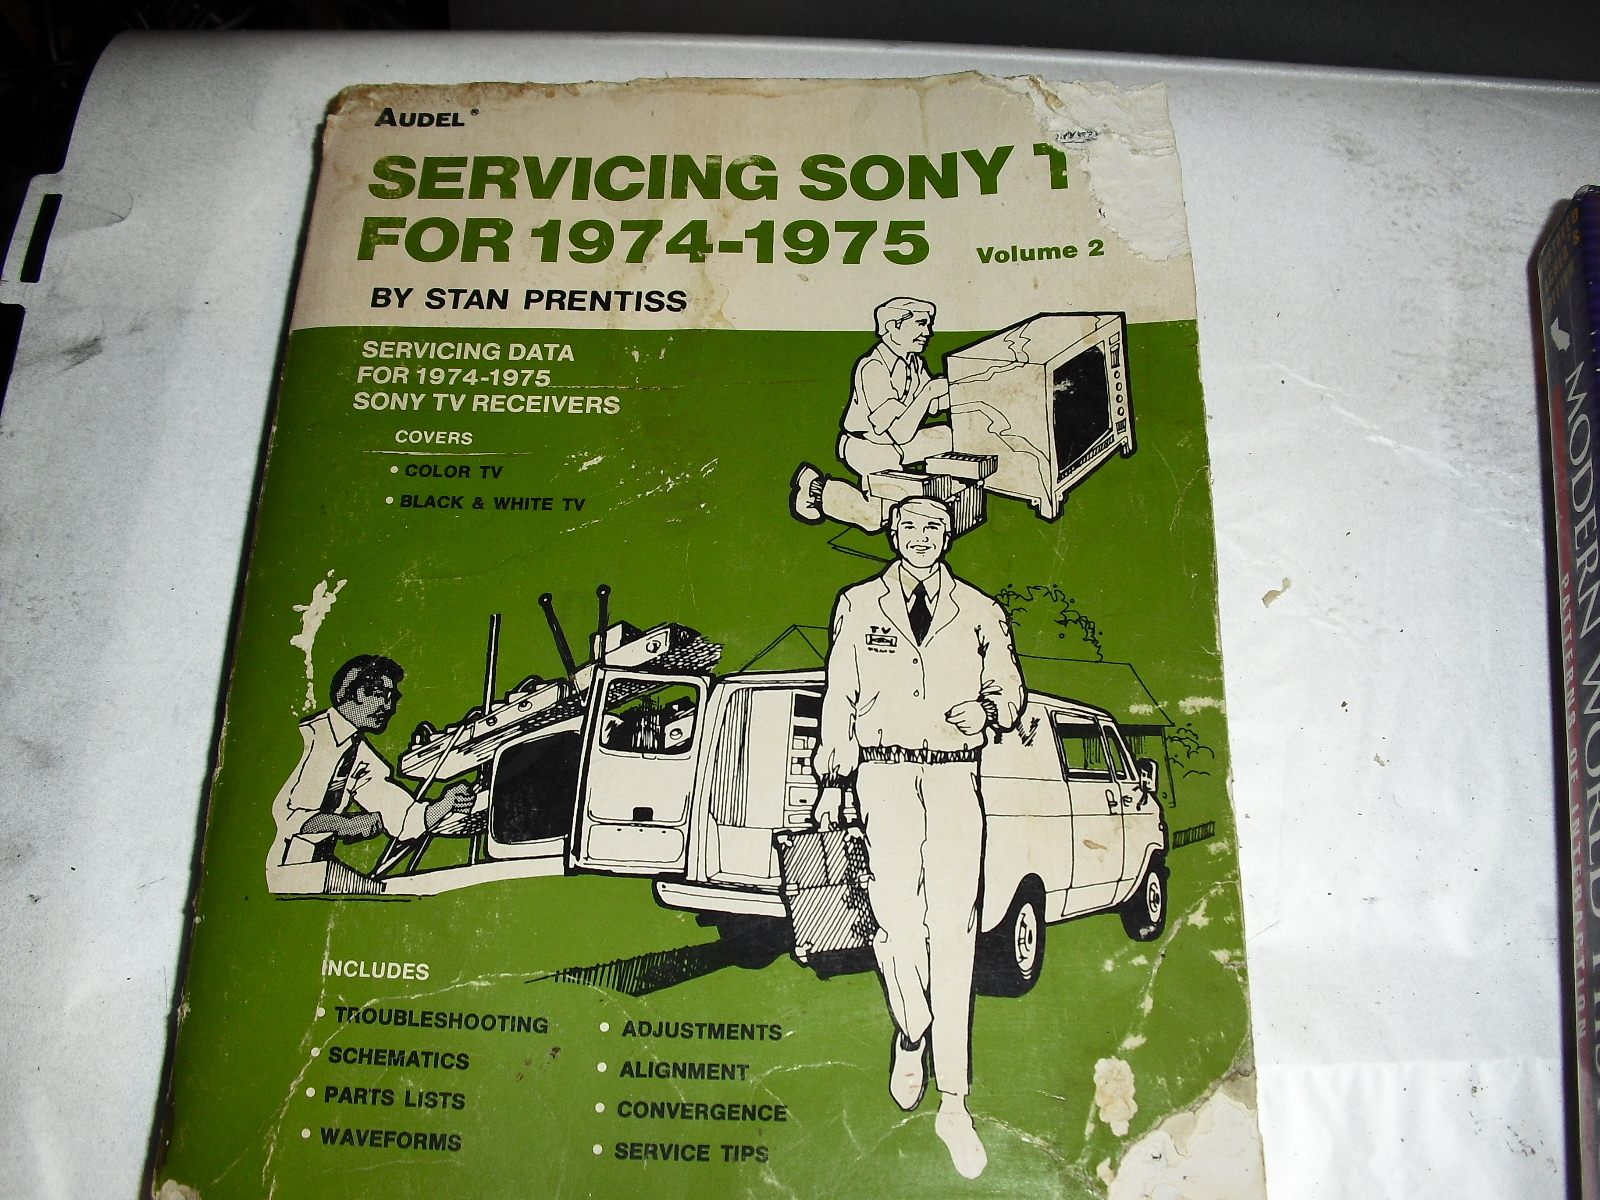 servicing  sony tv  for  1974-1975